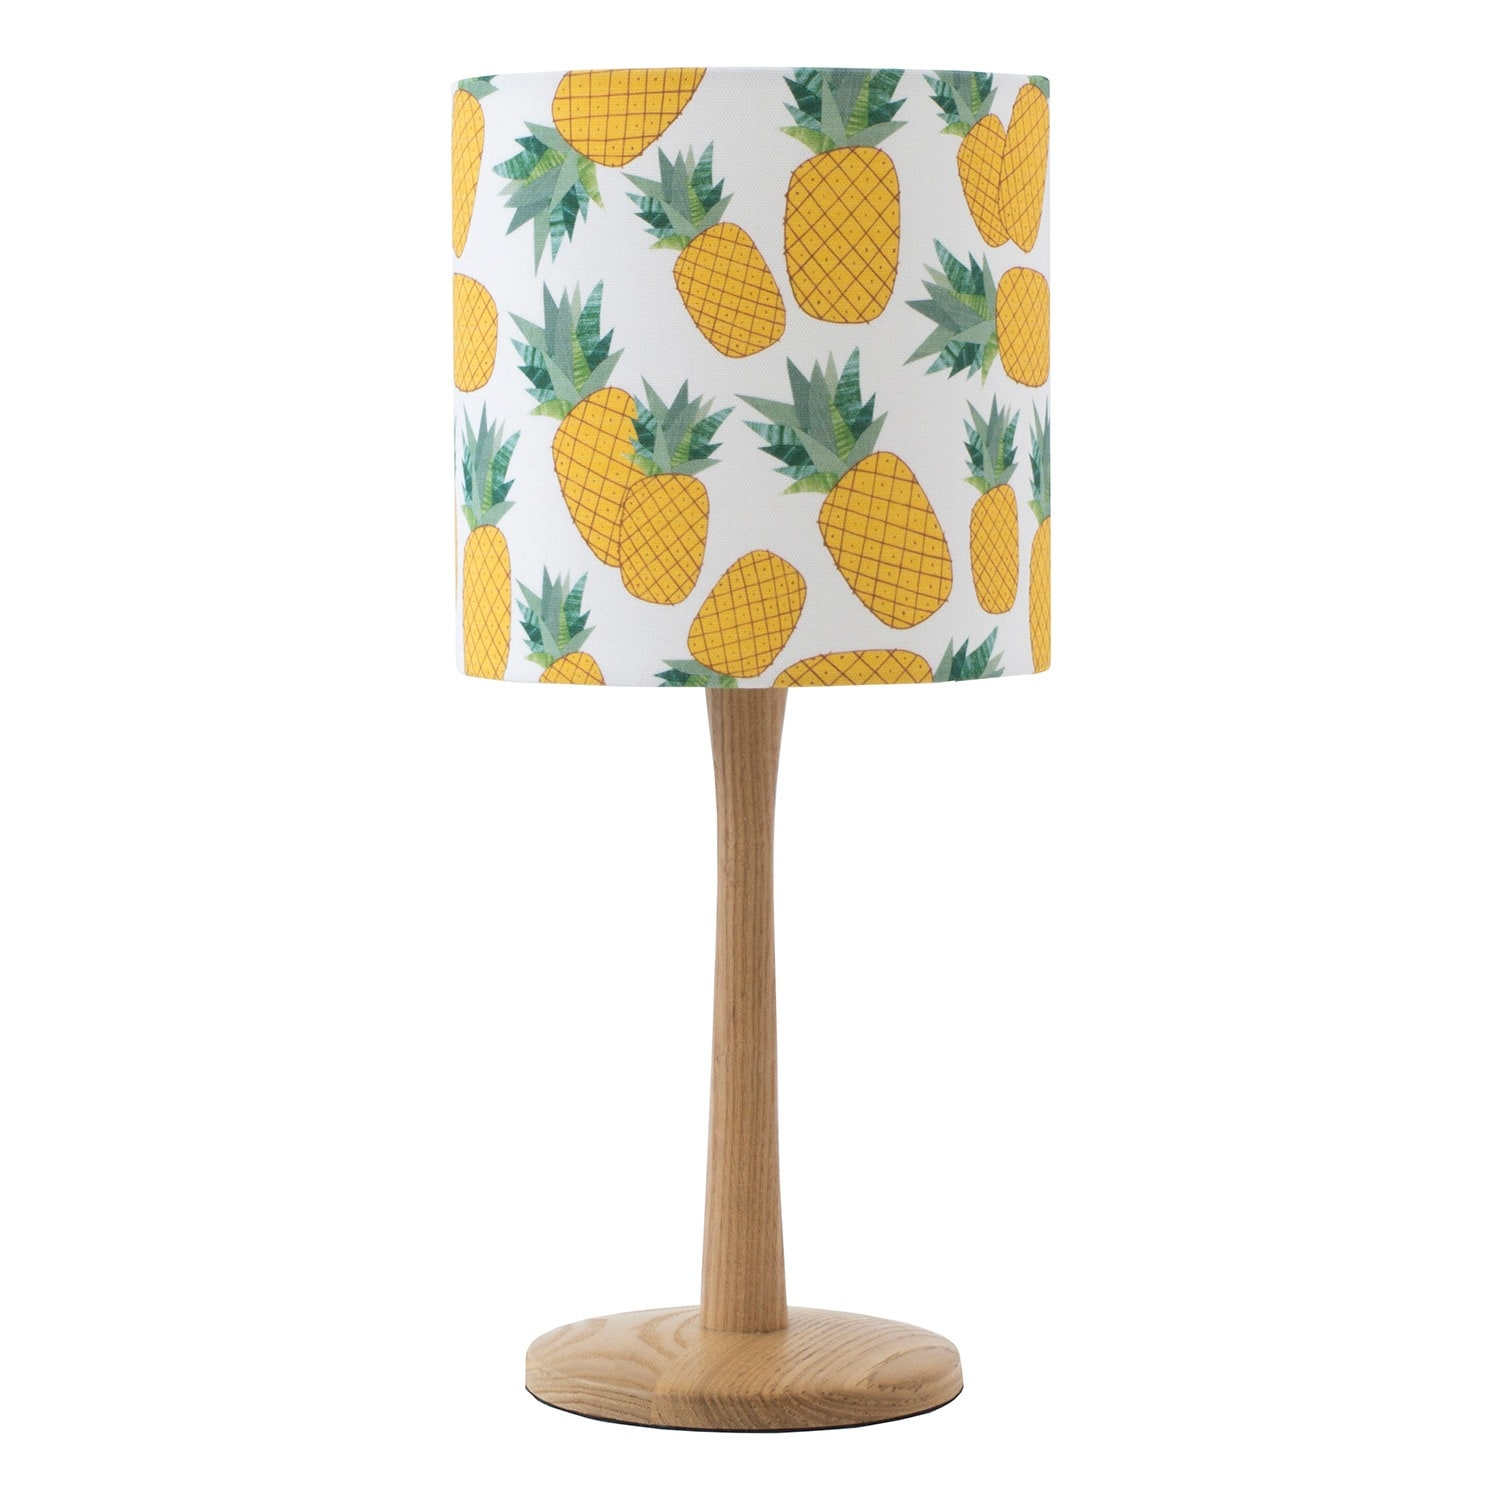 Rosa & Clara Designs - Piña Lamp Shade Small